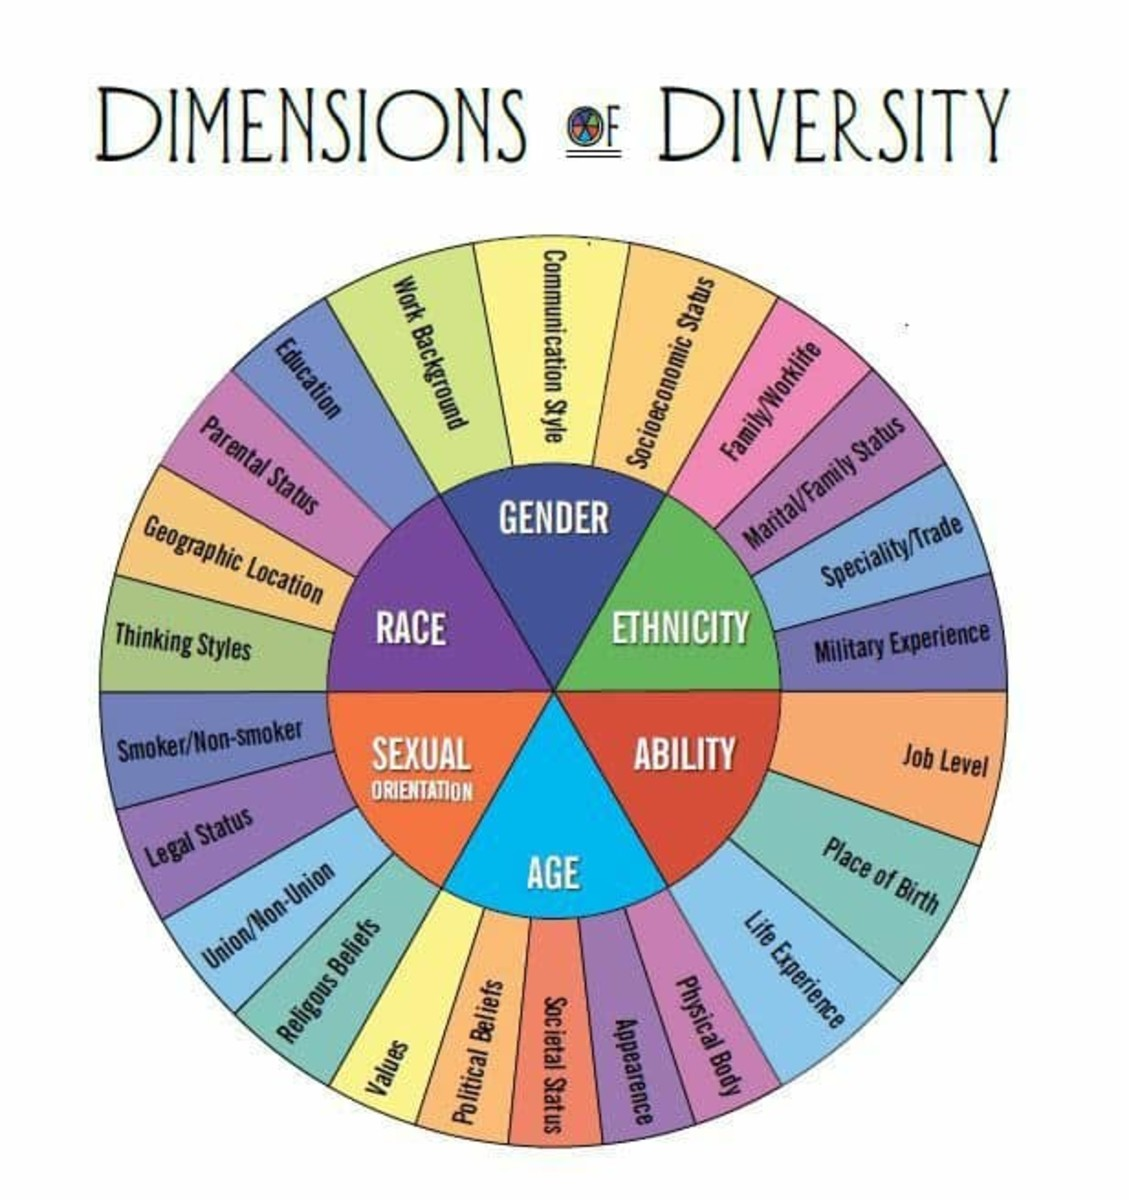 There are many dimensions of diversity.